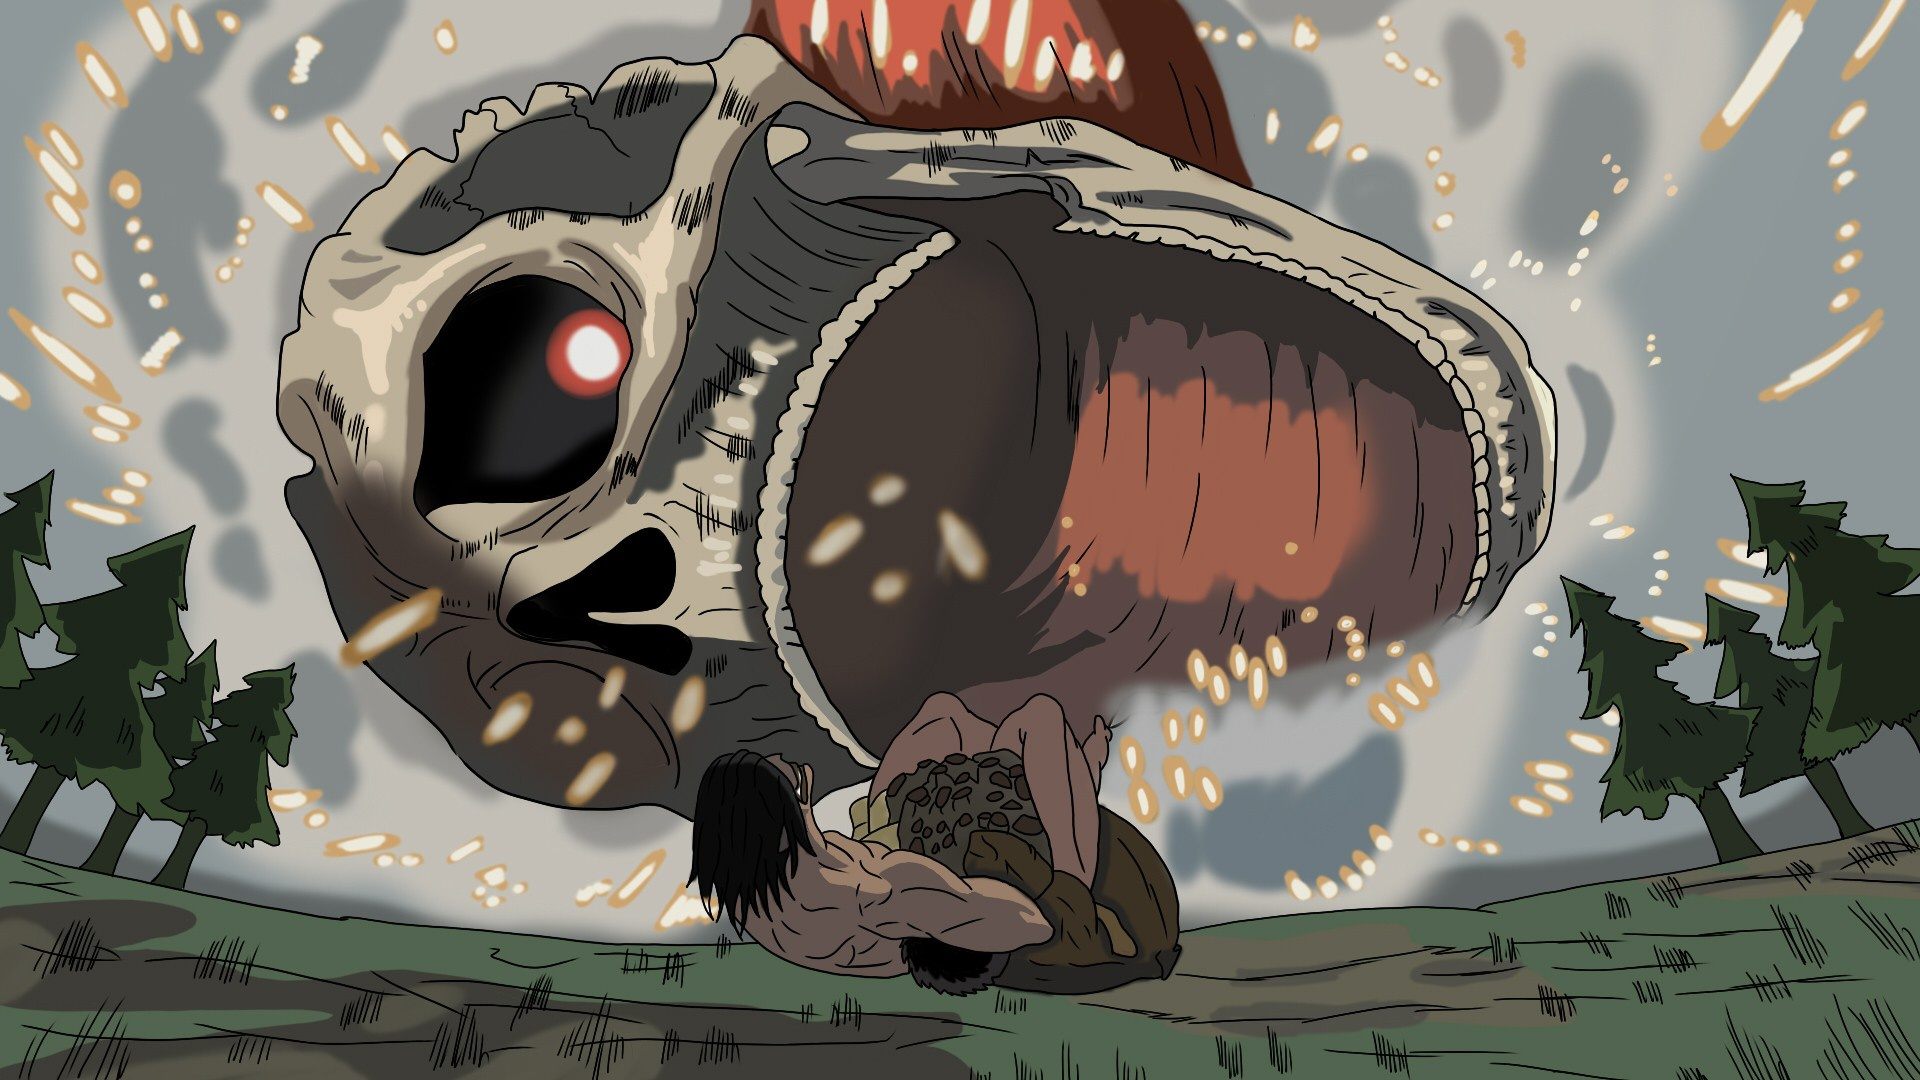 Eren Vs Armored Titan Hd Wallpaper Background Image 1920x1080 Id 1015873 Wallpaper Abyss